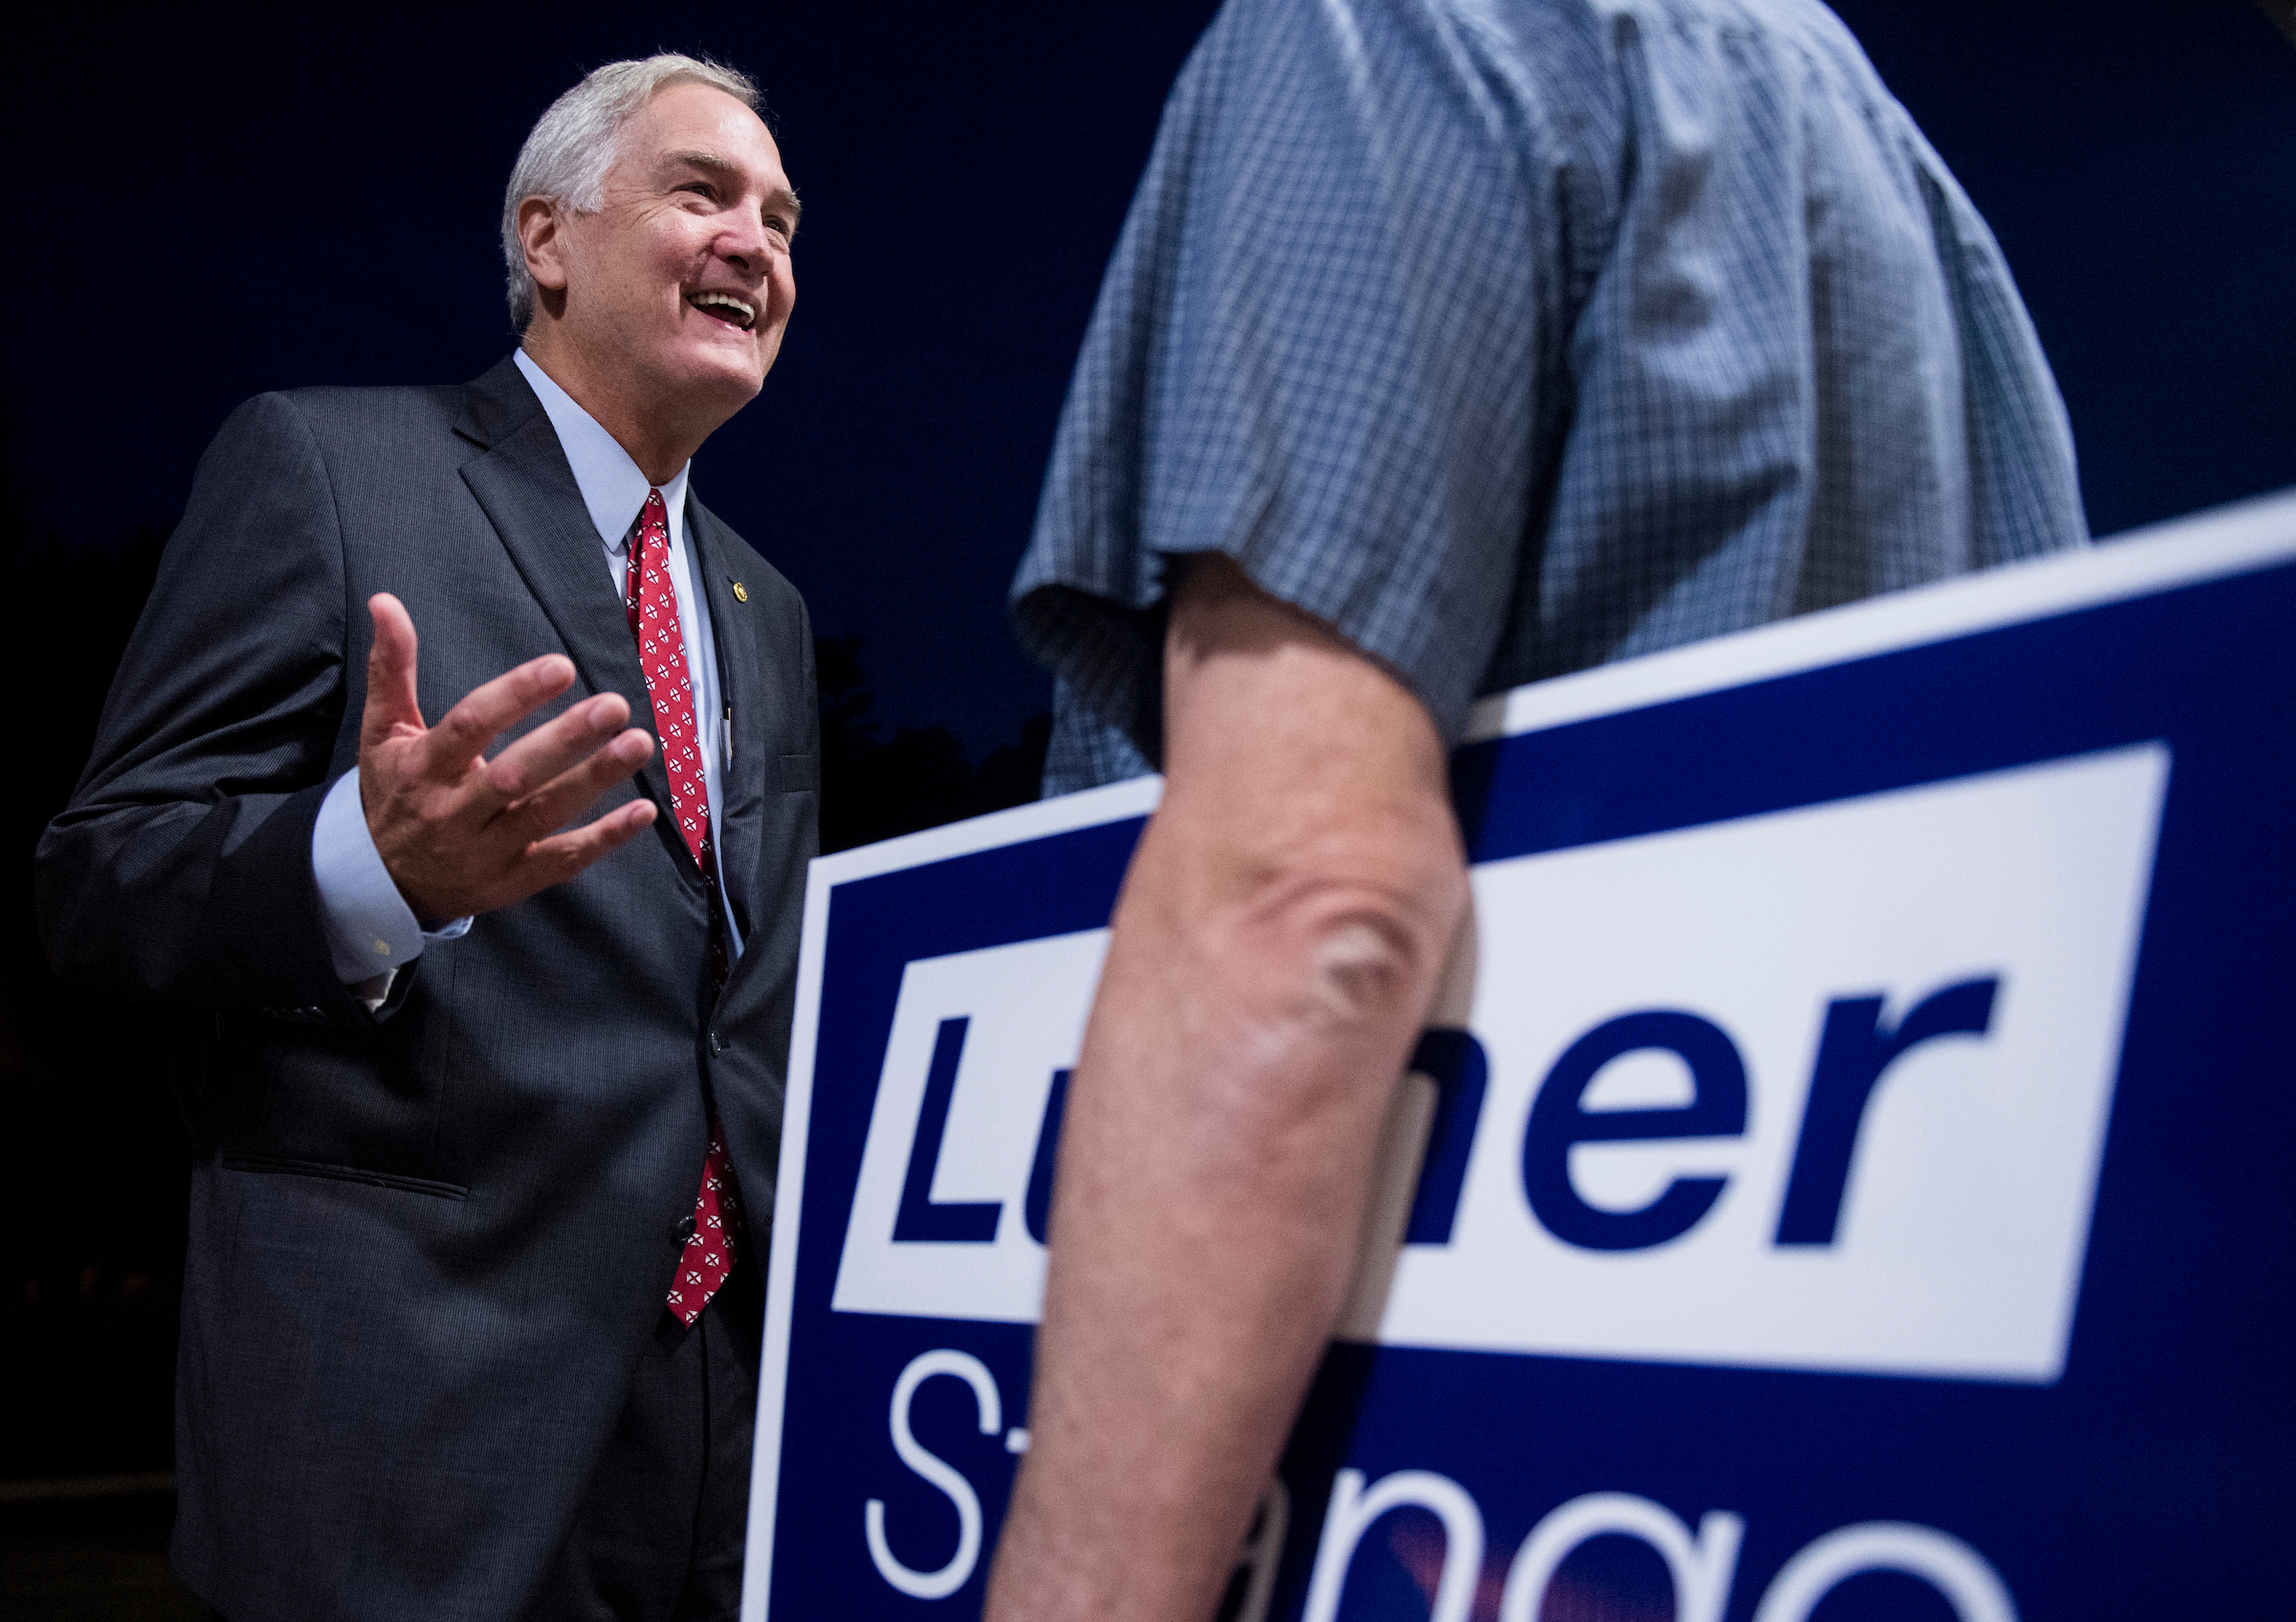 GOP candidate for U.S. Senate Sen. Luther Strange, R-Ala., left, speaks with a supporter after the U.S. Senate candidate forum held by the Shelby County Republican Party in Pelham, Ala., on Friday, Aug. 4, 2017. Sen. Strange is running in the special election to fill the seat vacated by Attorney General Jeff Sessions. (Bill Clark/CQ Roll Call)